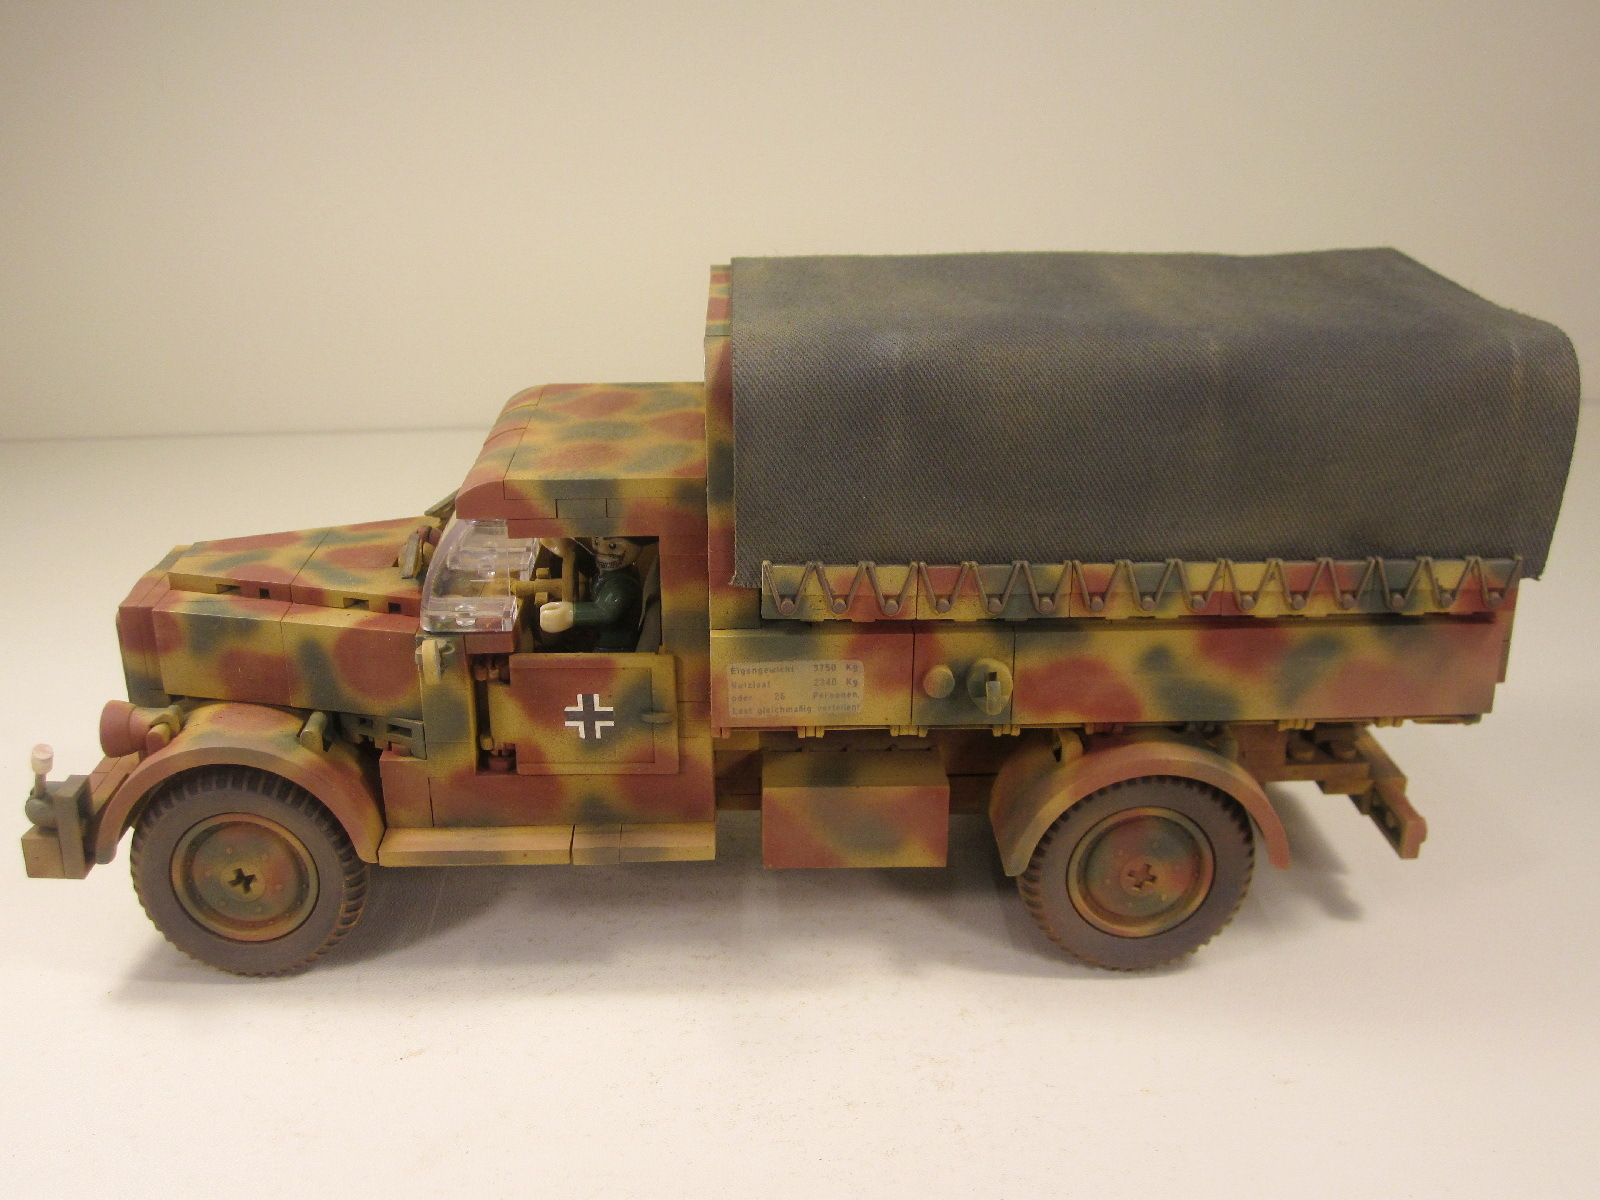 Cobi_2449_Opel_Blitz_www.super-bricks.de_camouflage_paint_Small_Army_Tarnung_01